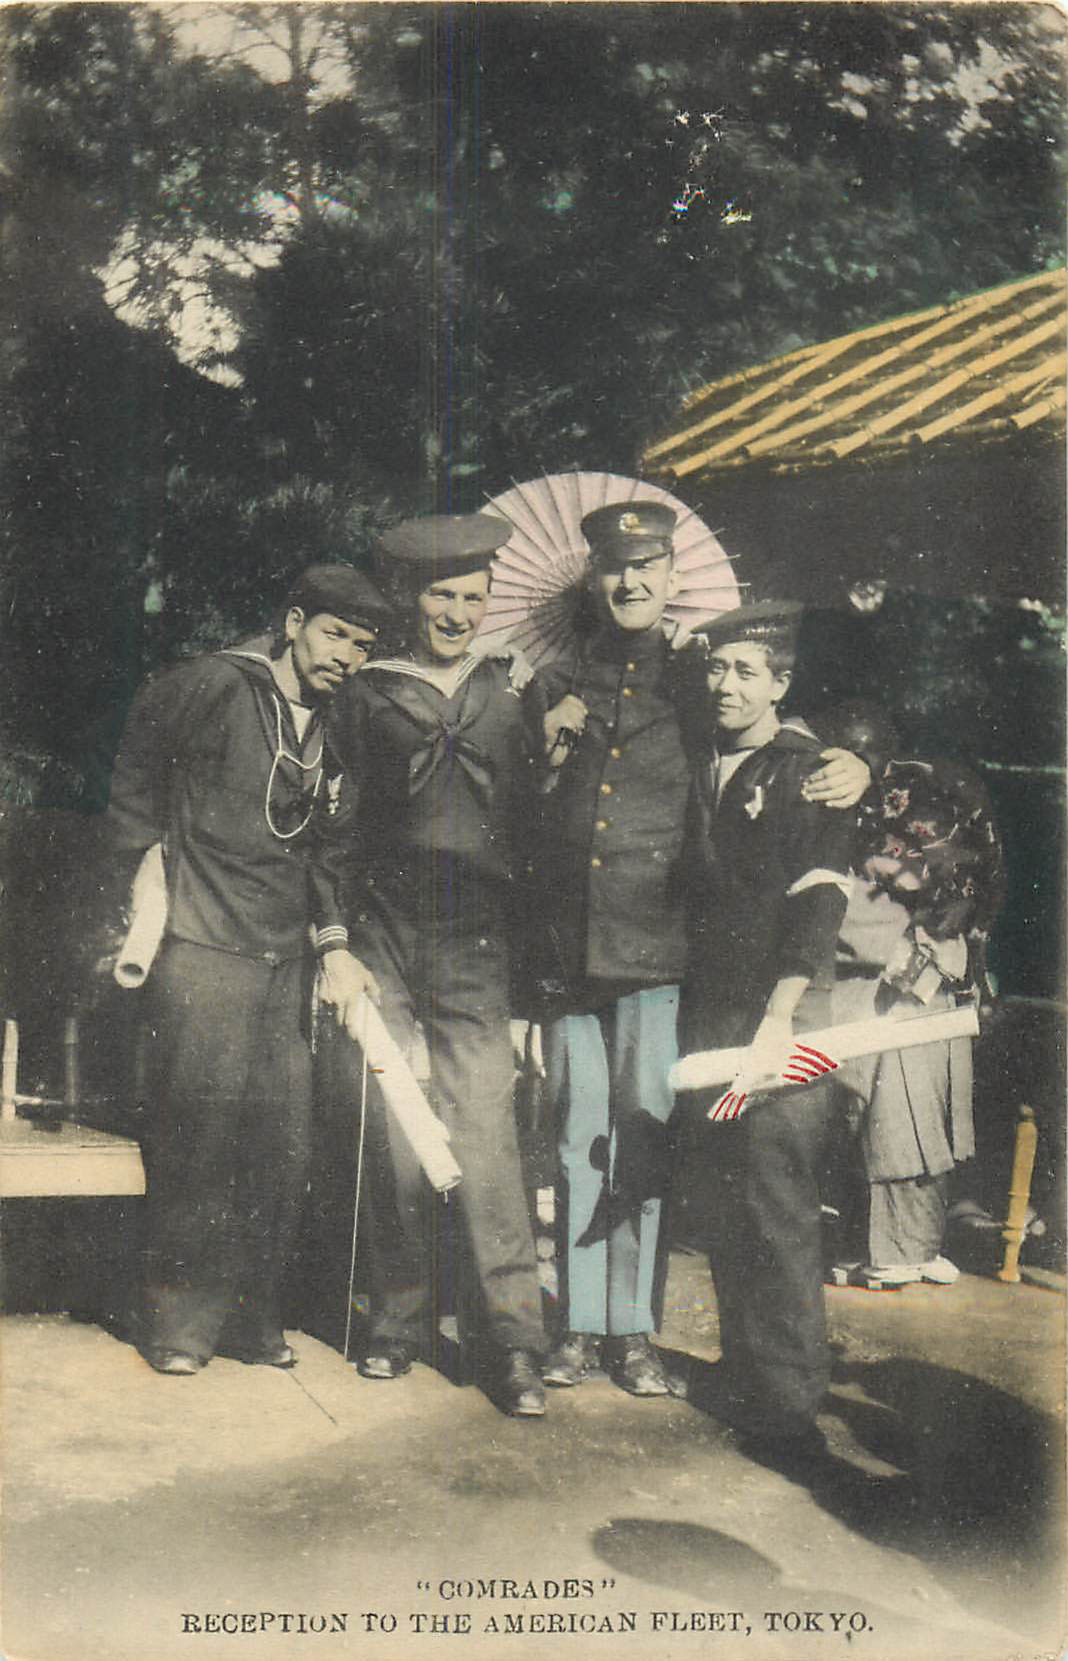 Reception to the American Fleet, Tokyo, Japan